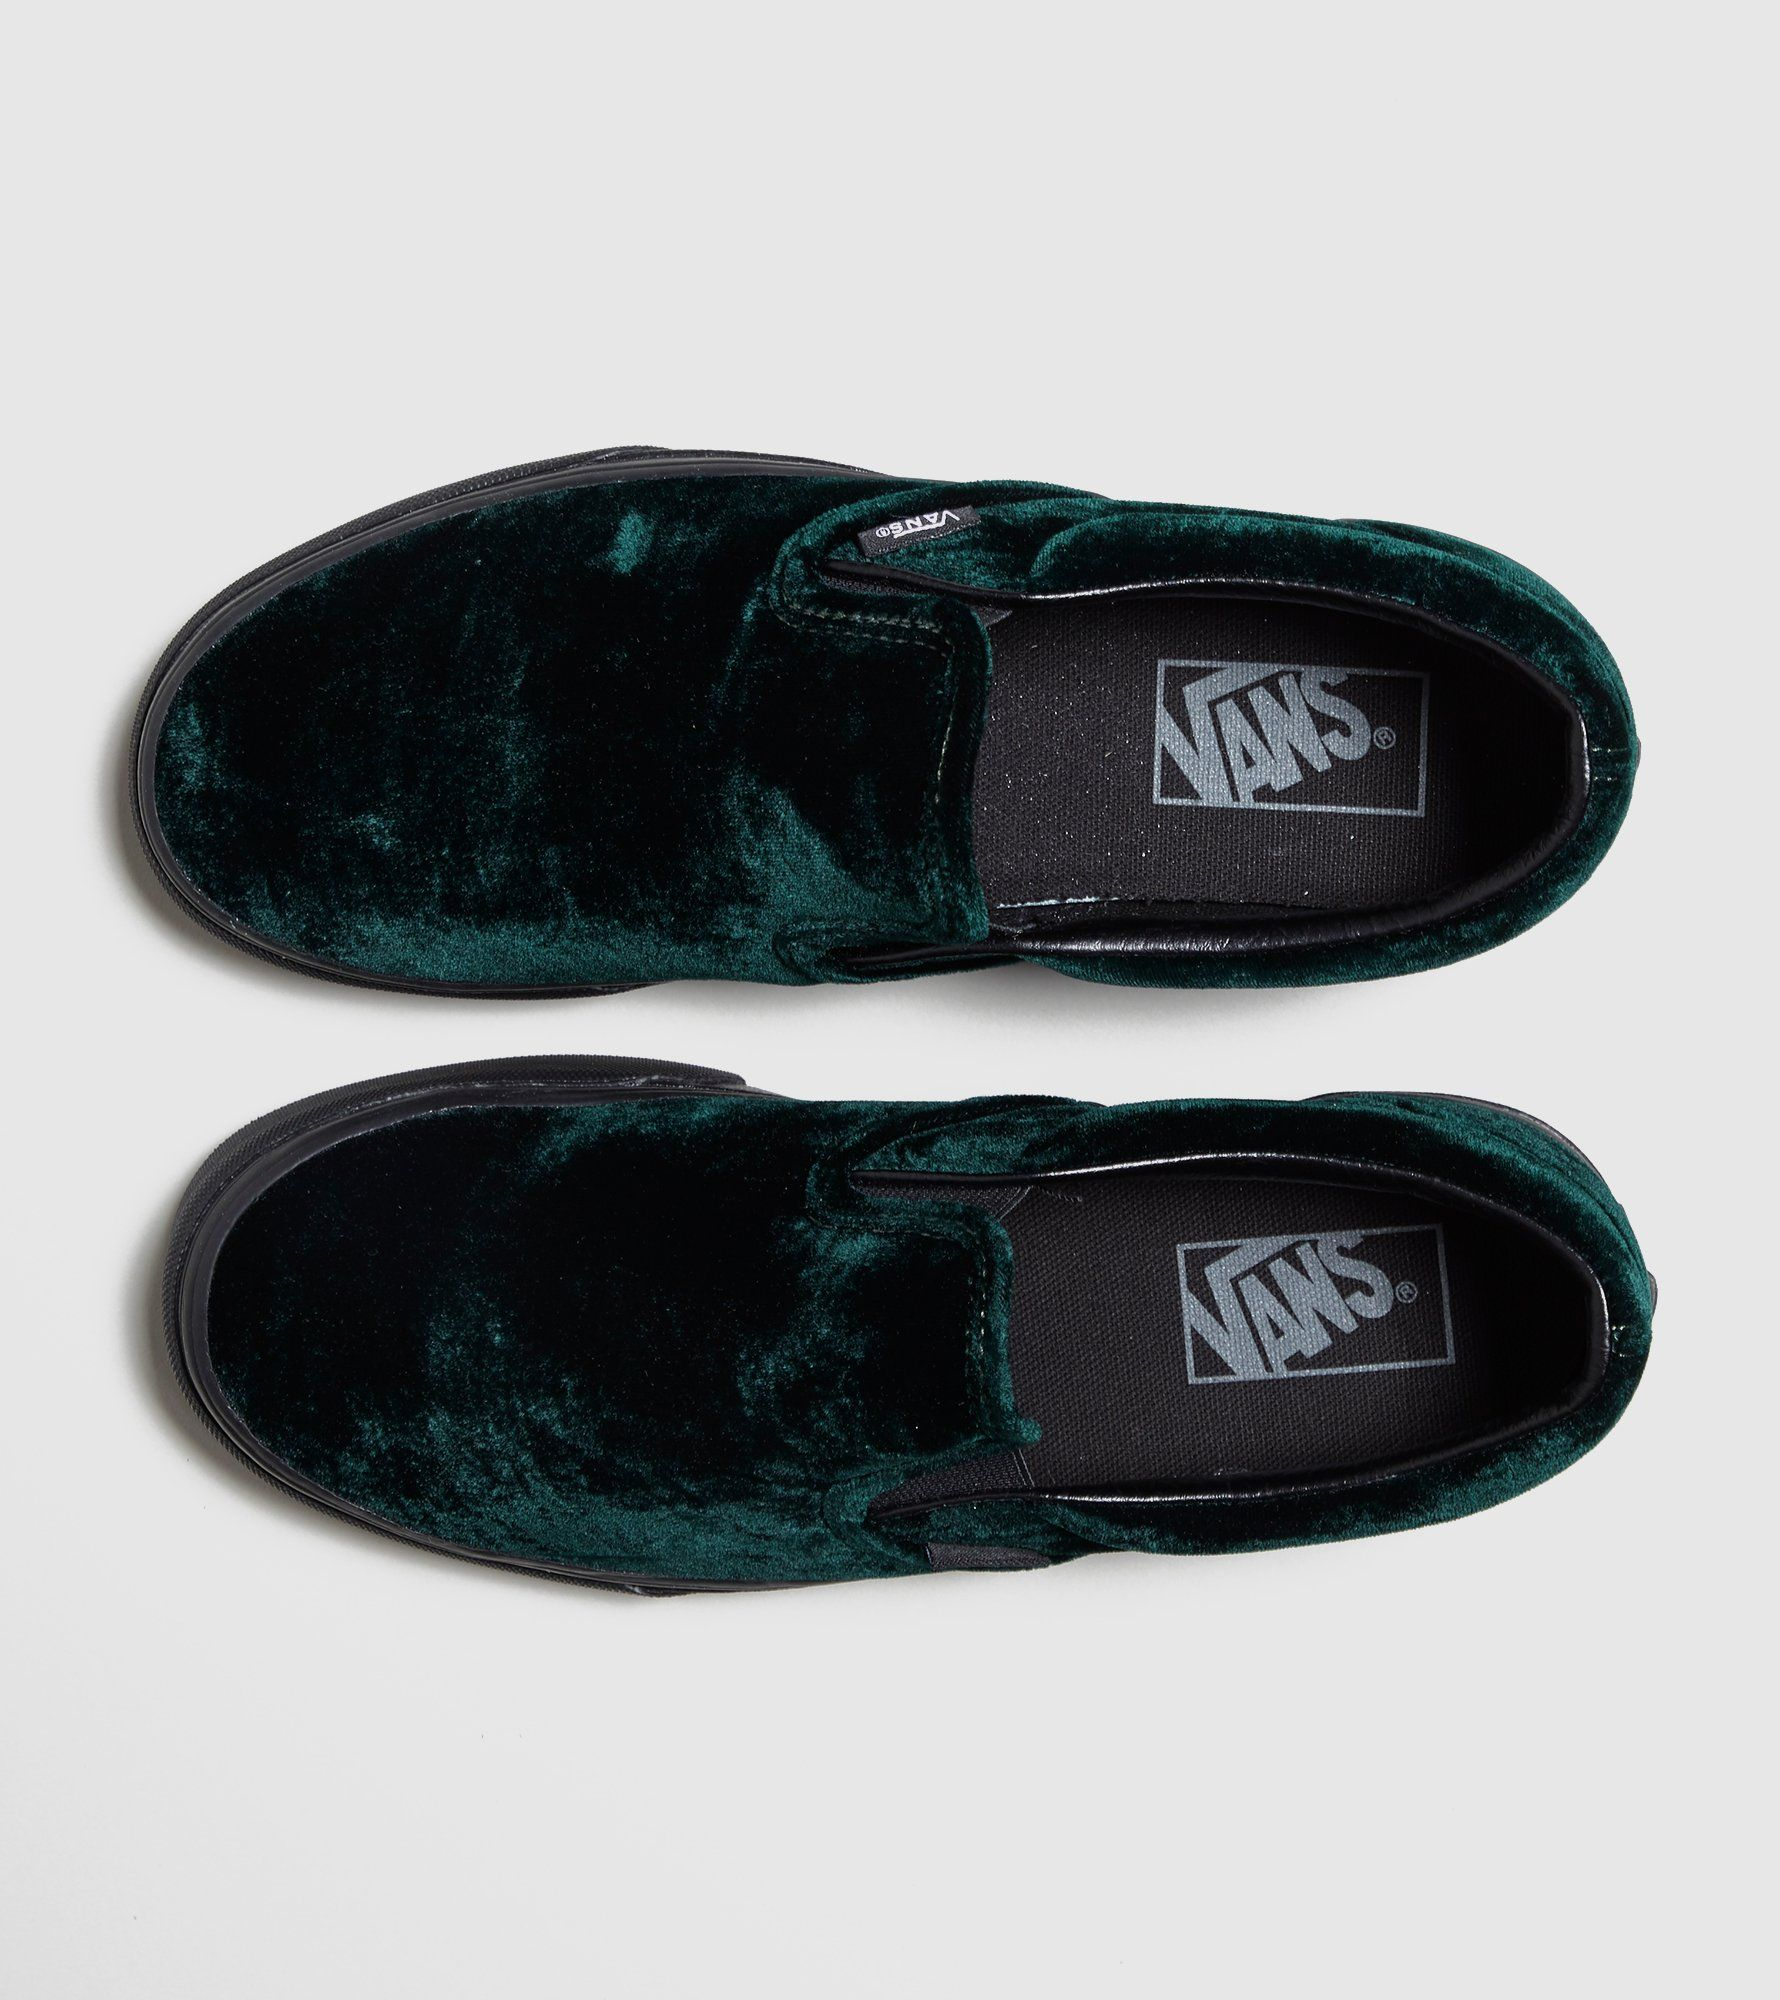 Vans Velvet Slip On Women's